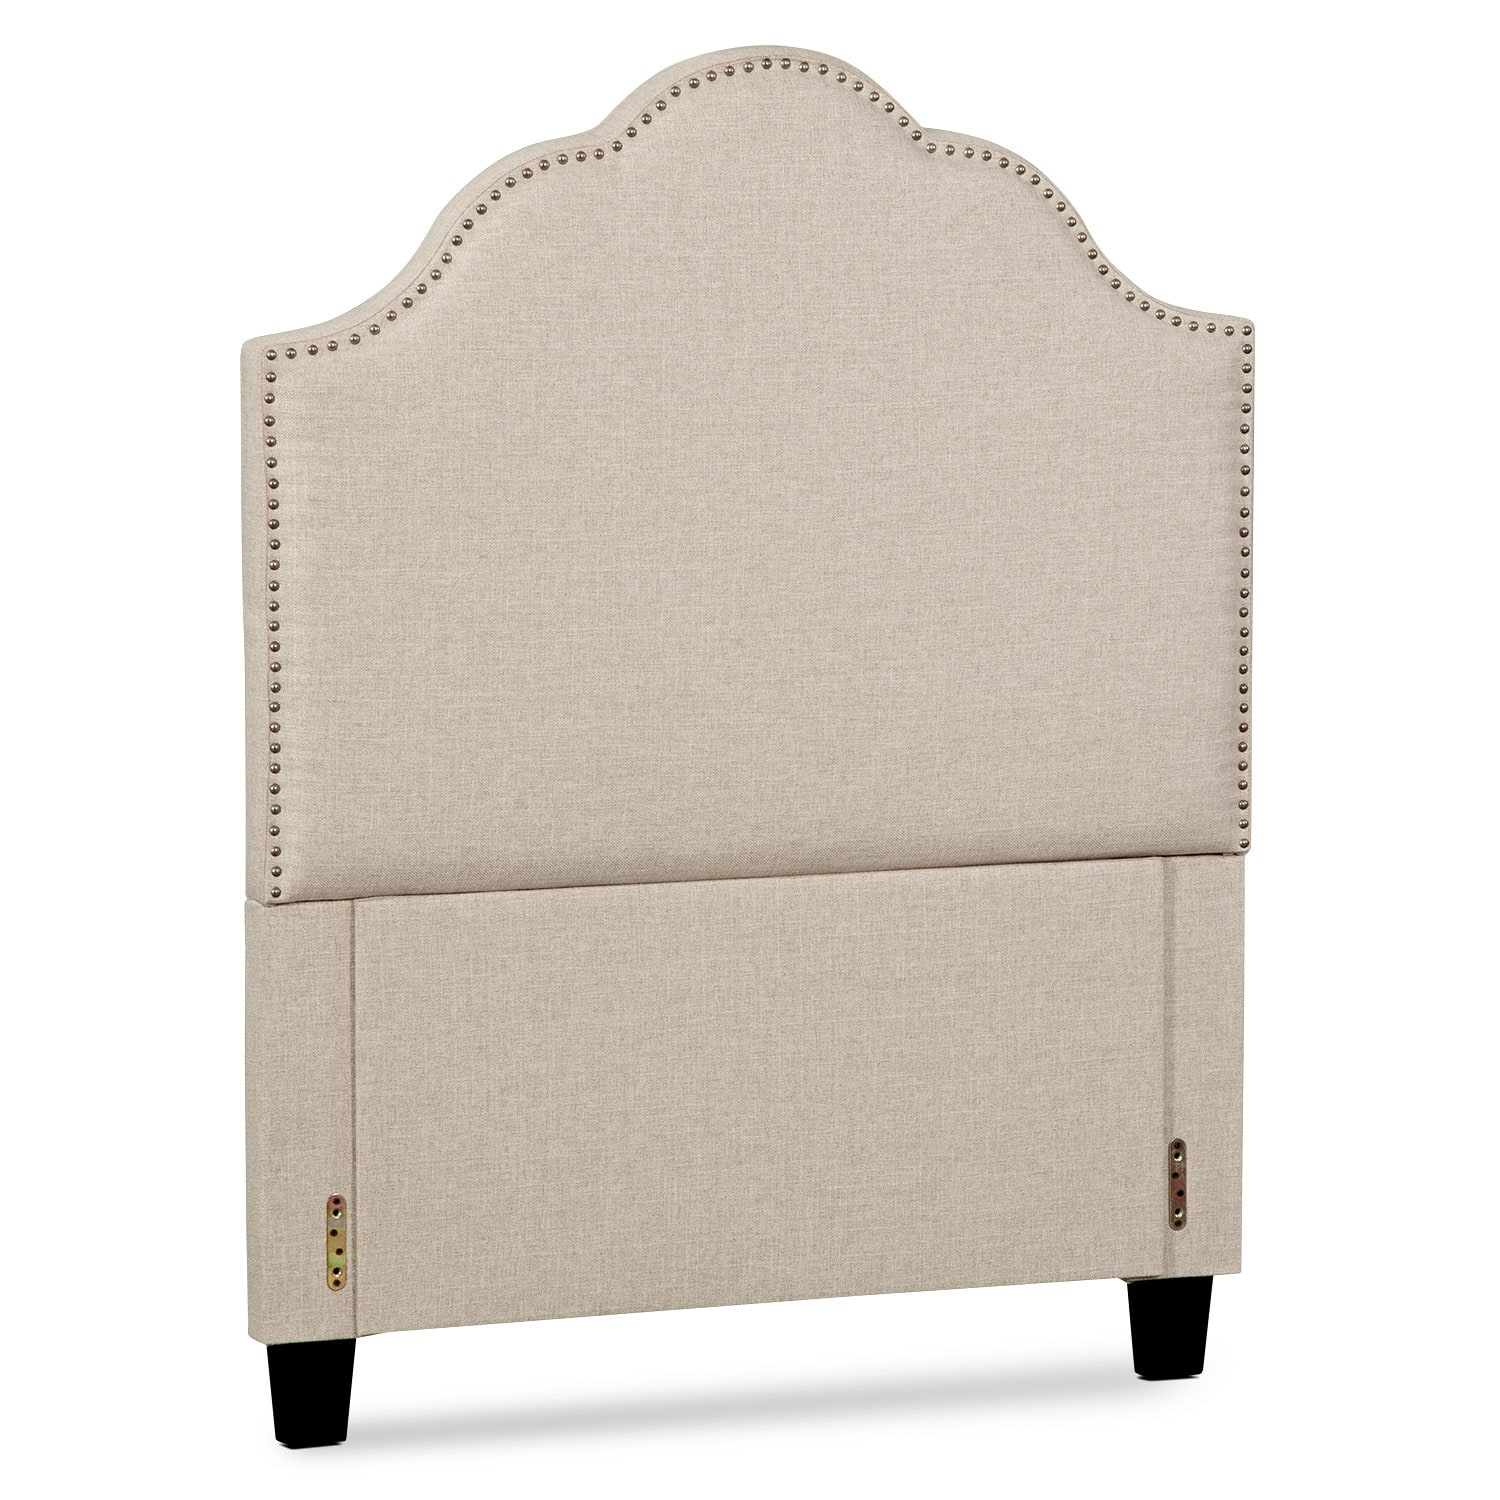 Maya Full Upholstered Headboard - Beige